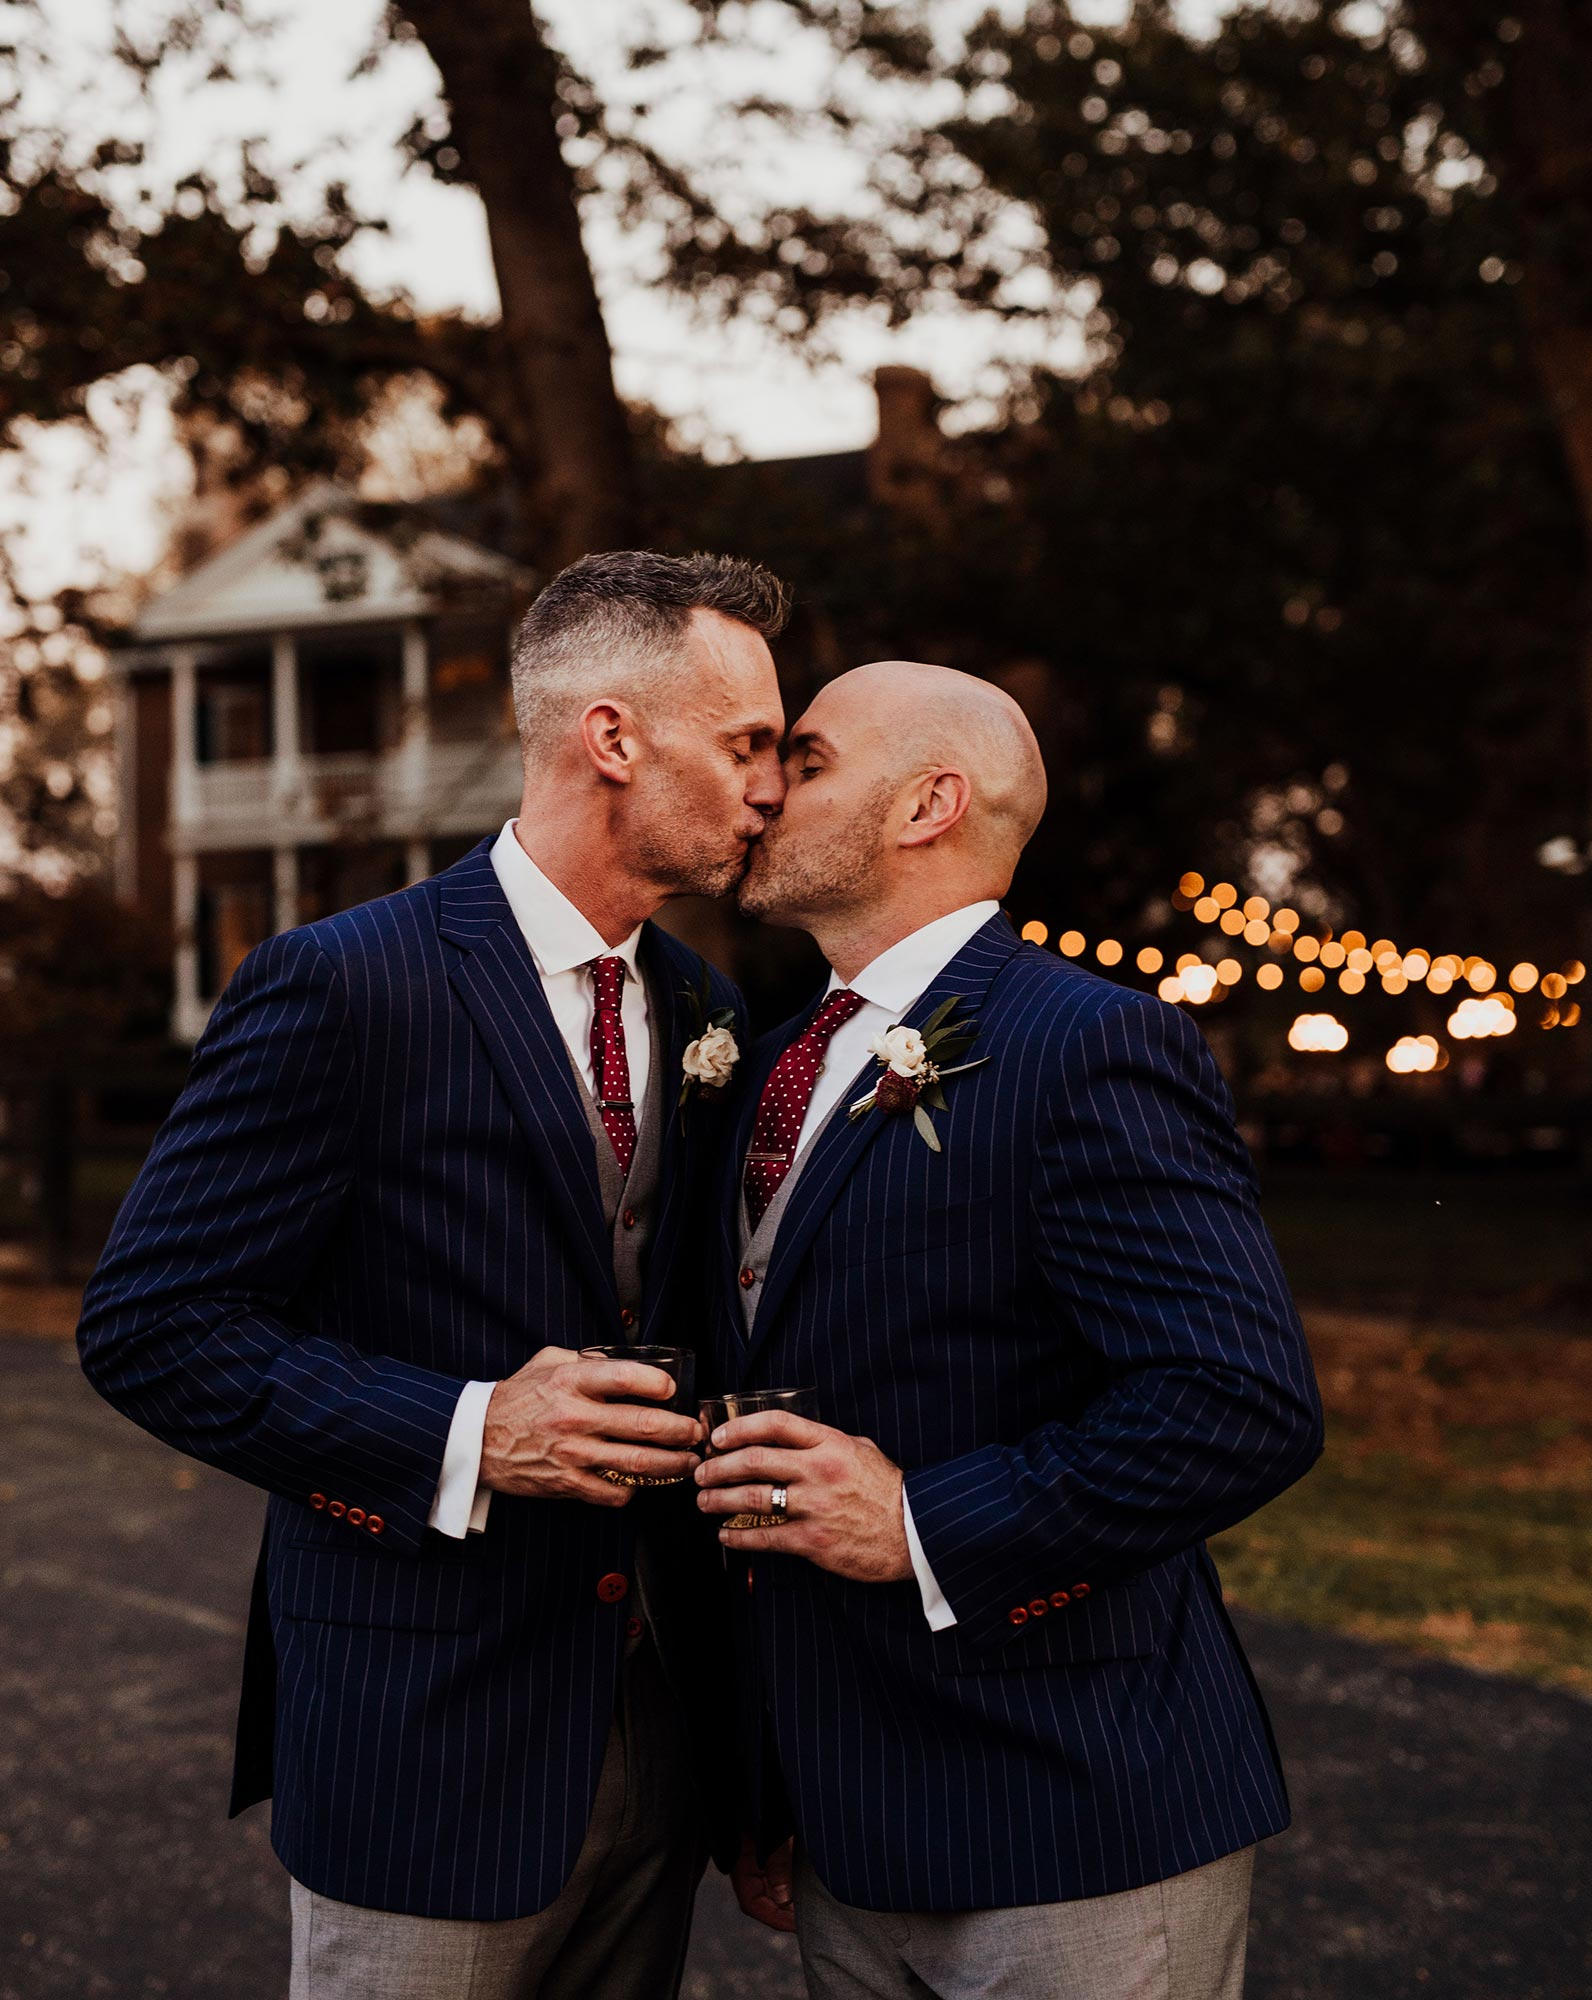 LGBTQ Louisville Kentucky Wedding at Hermitage Farm Crystal Ludwick Photo kiss outside house